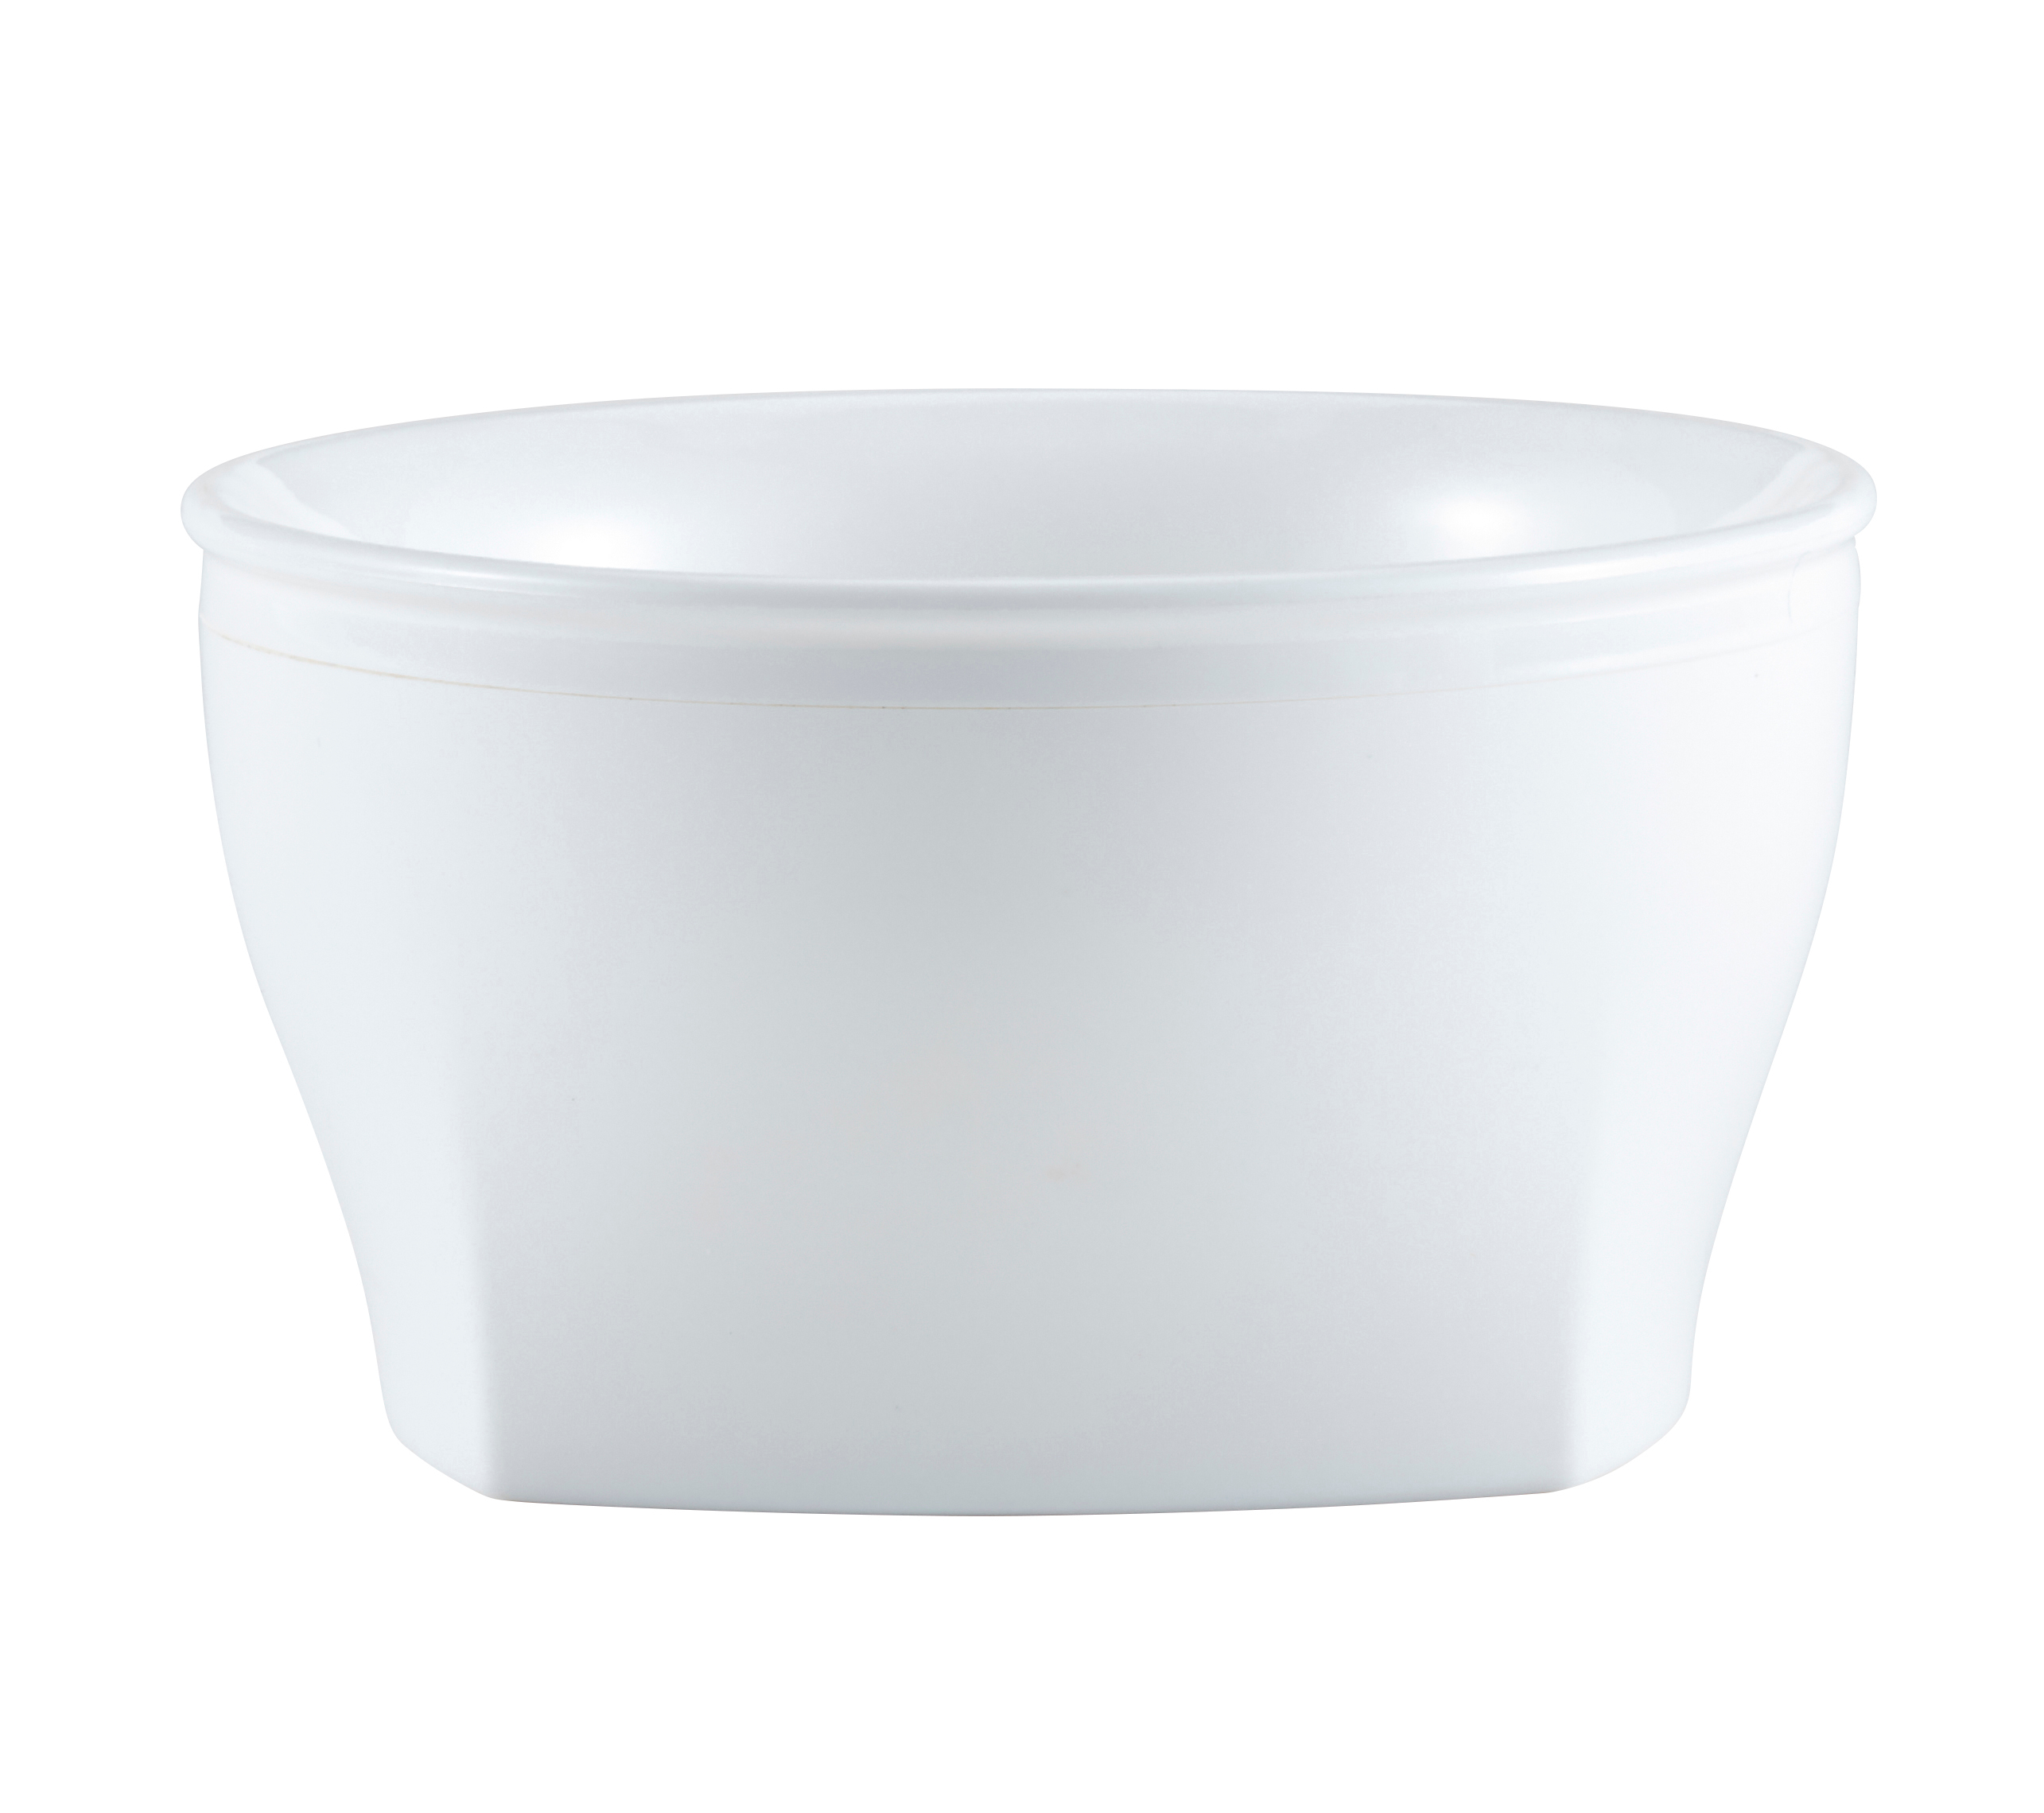 Cambro MDSHB9148 bowls (non disposable)